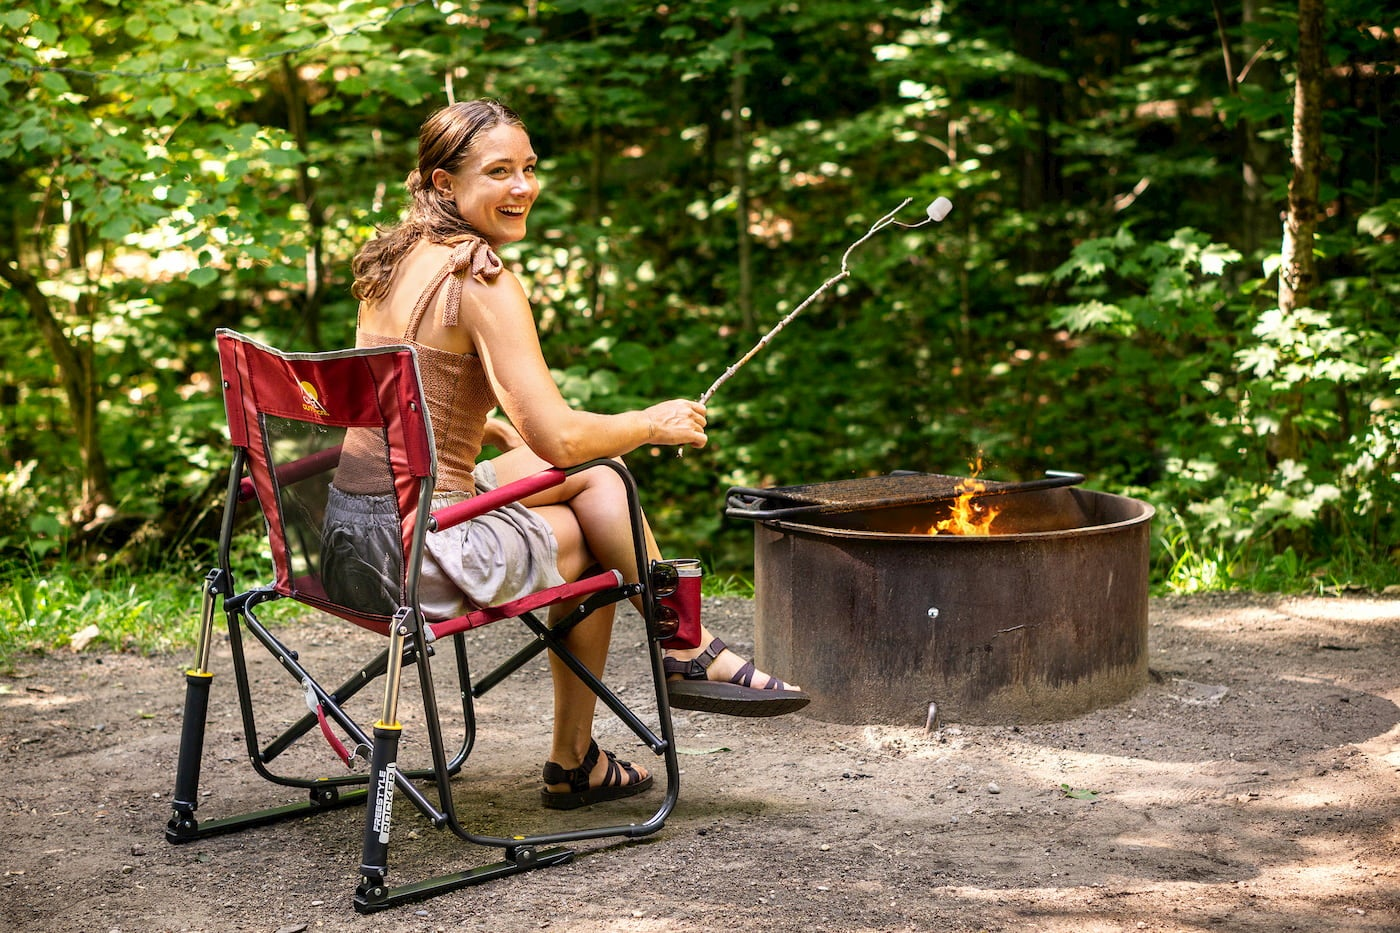 GCI outdoor chair used for grilling over a campfire.